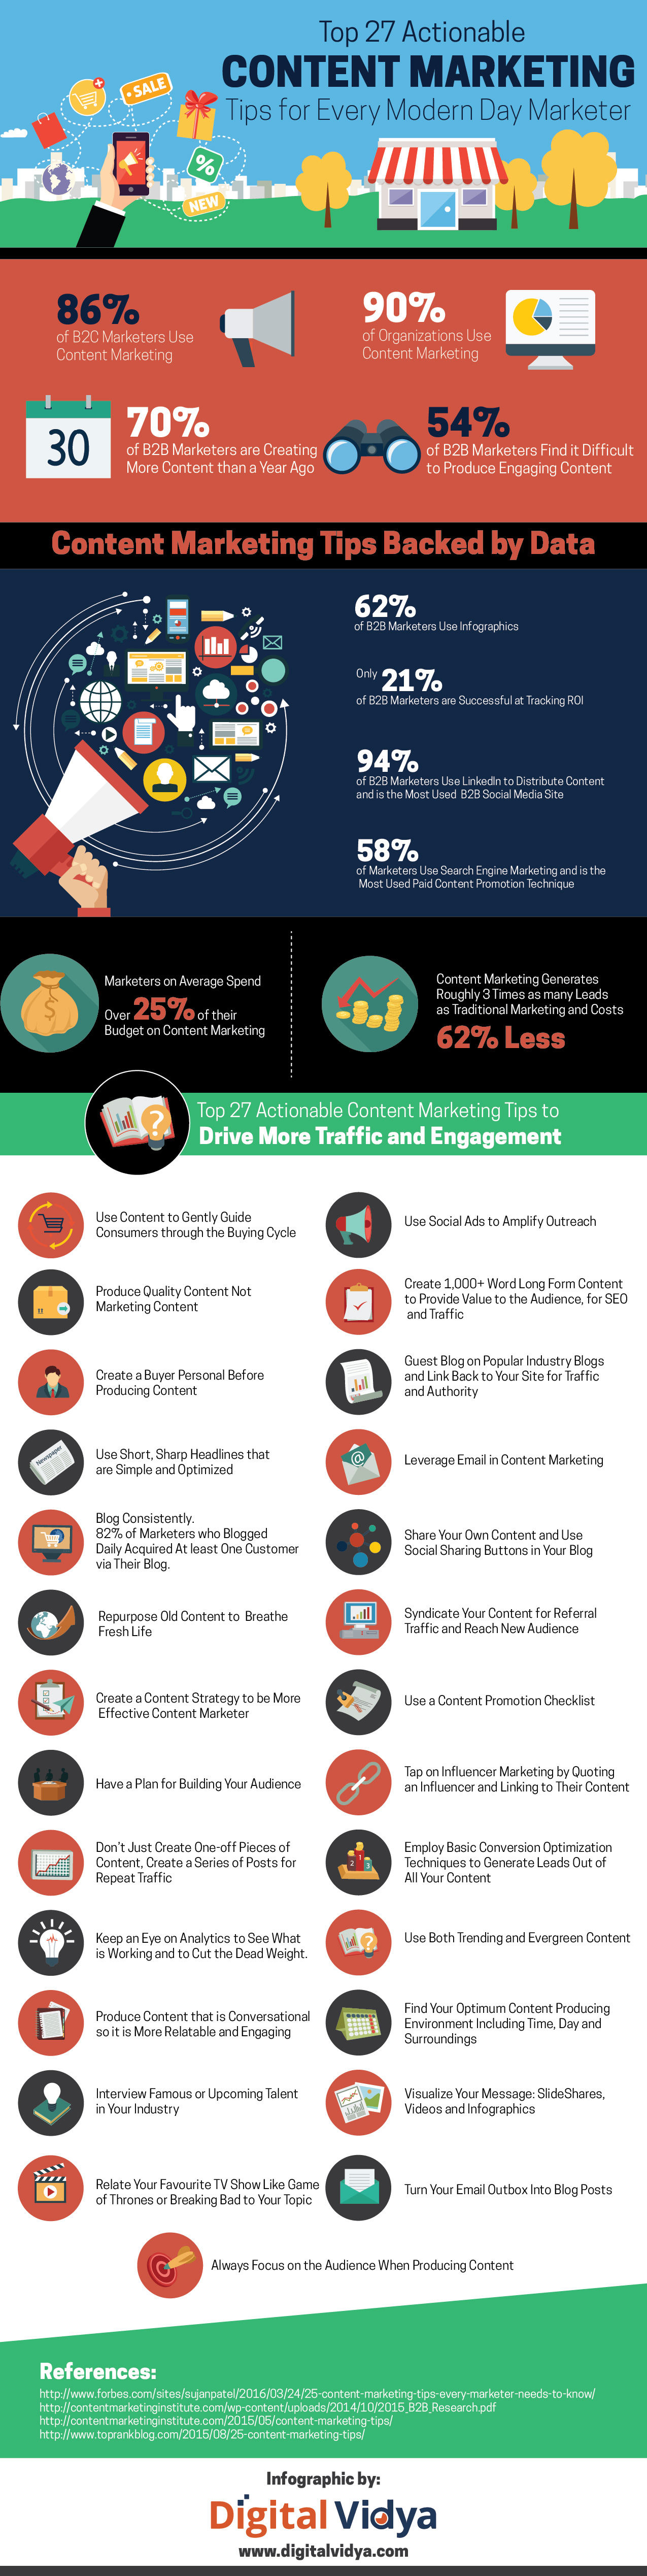 Content Marketing Tips For Every Modern Marketer Infographic